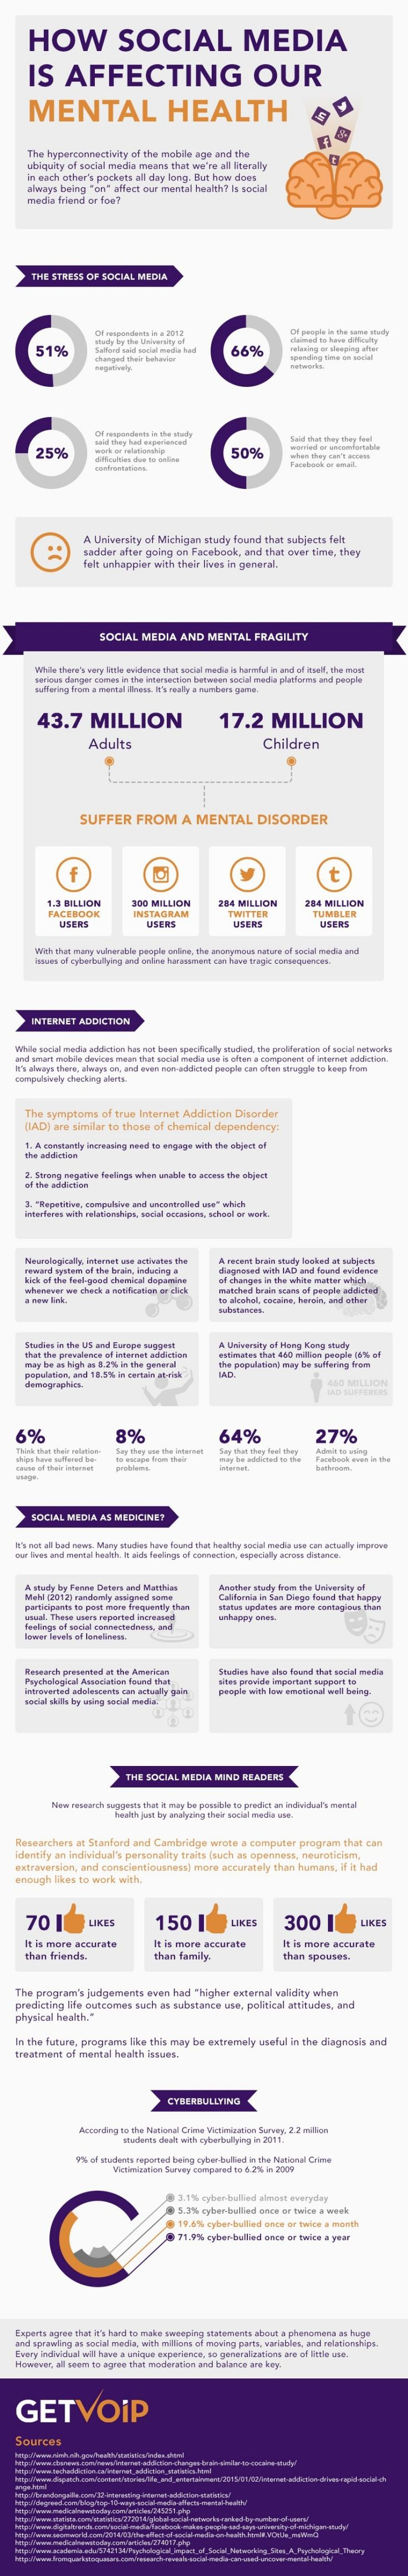 How social media is affecting our mental health   social-media-health-infographic